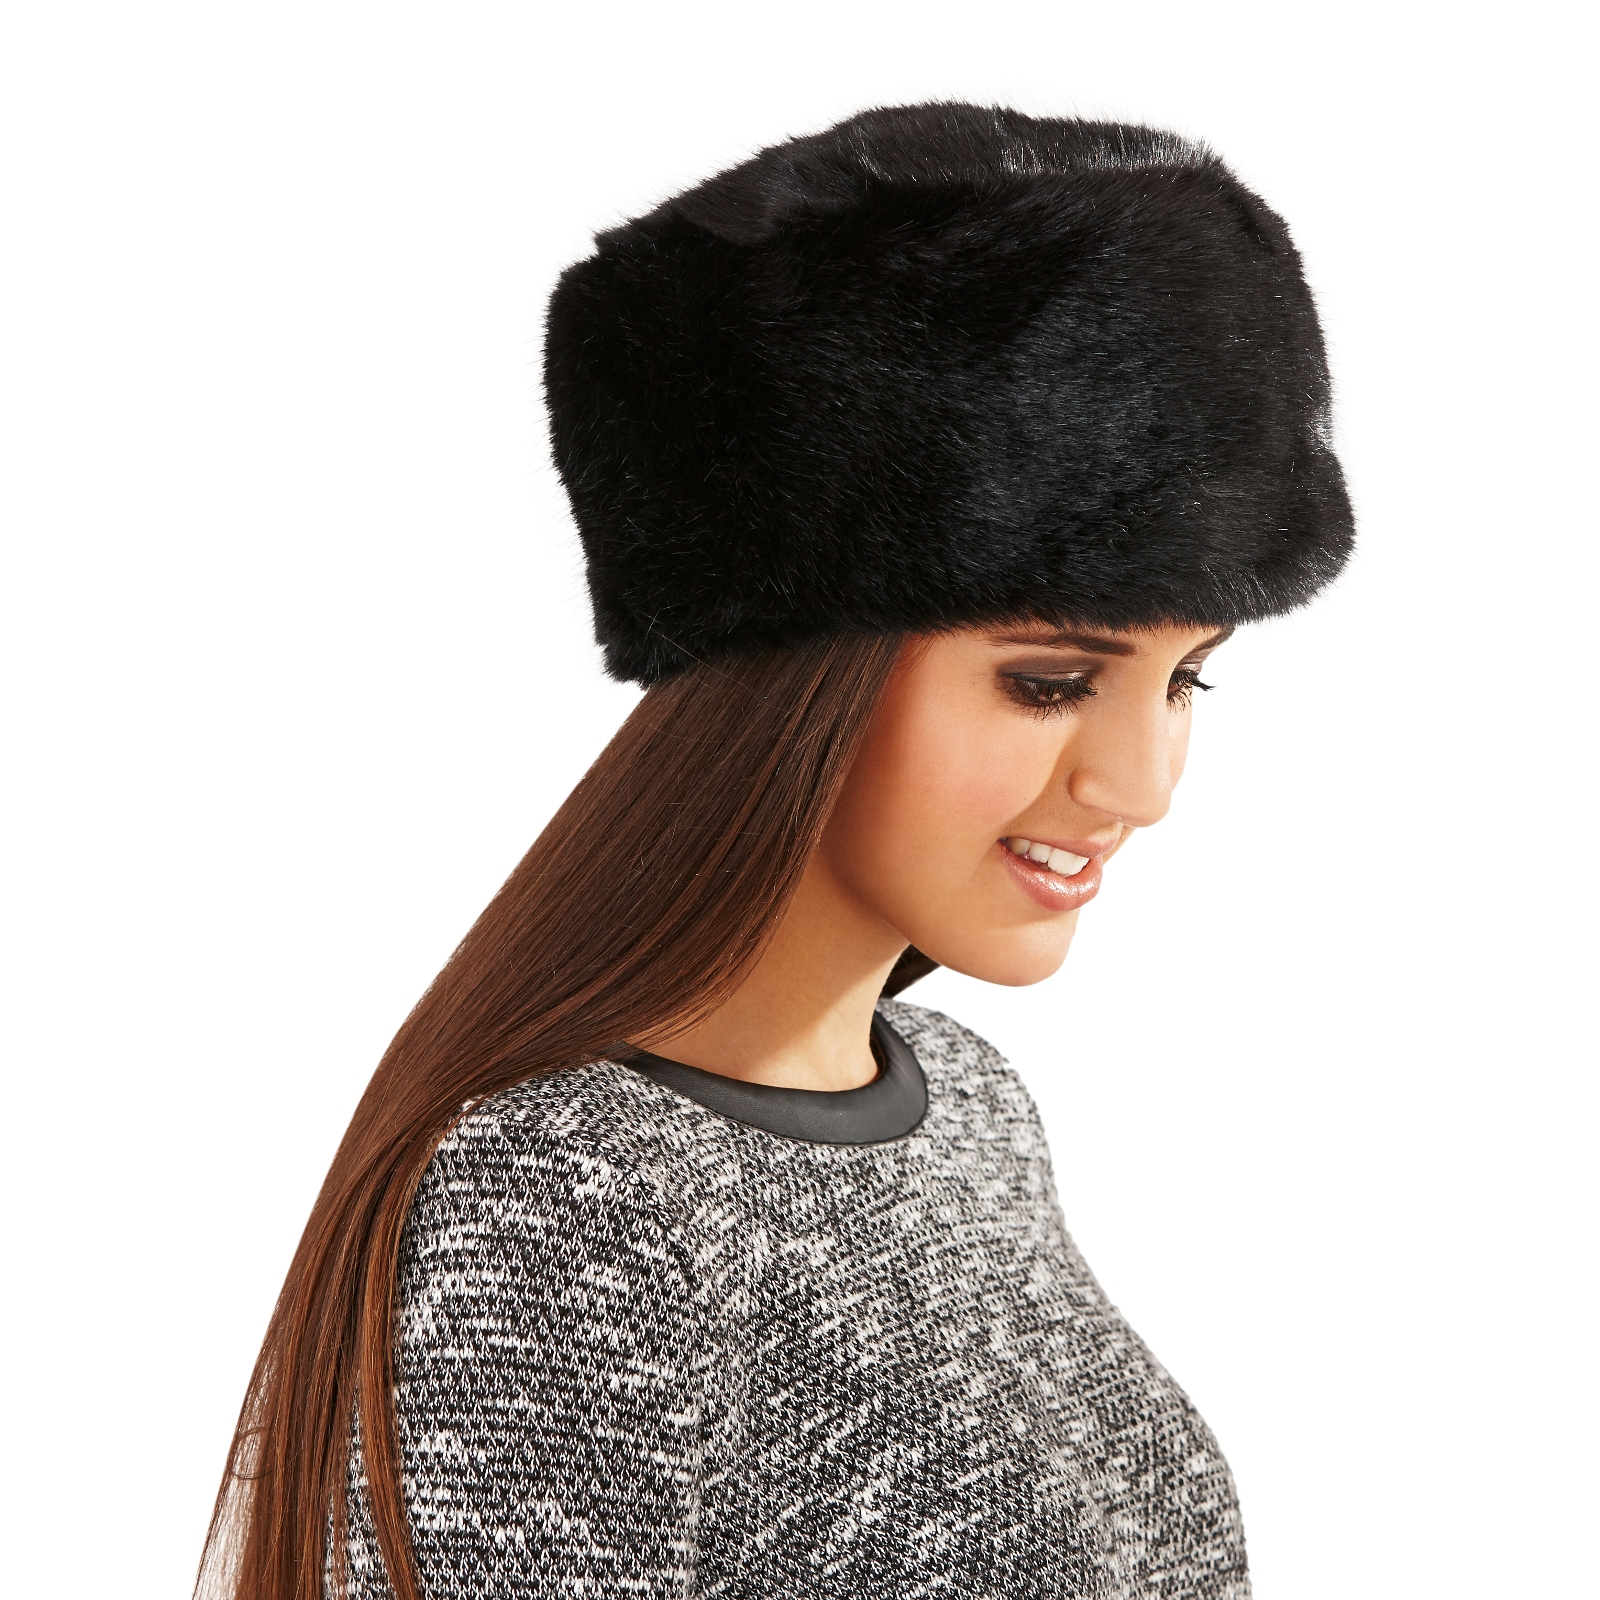 Whether you're looking for a casual winter hat or a simply ravishing fashion fur hat, our selection of Women's Winter Fur Hats will have something just for you. Made from only the finest furs, Buy a quality Women's Winter Hat. We are proud to offer the hottest styles in women's winter hats this season. Choose from a large selection of high /5(4K).